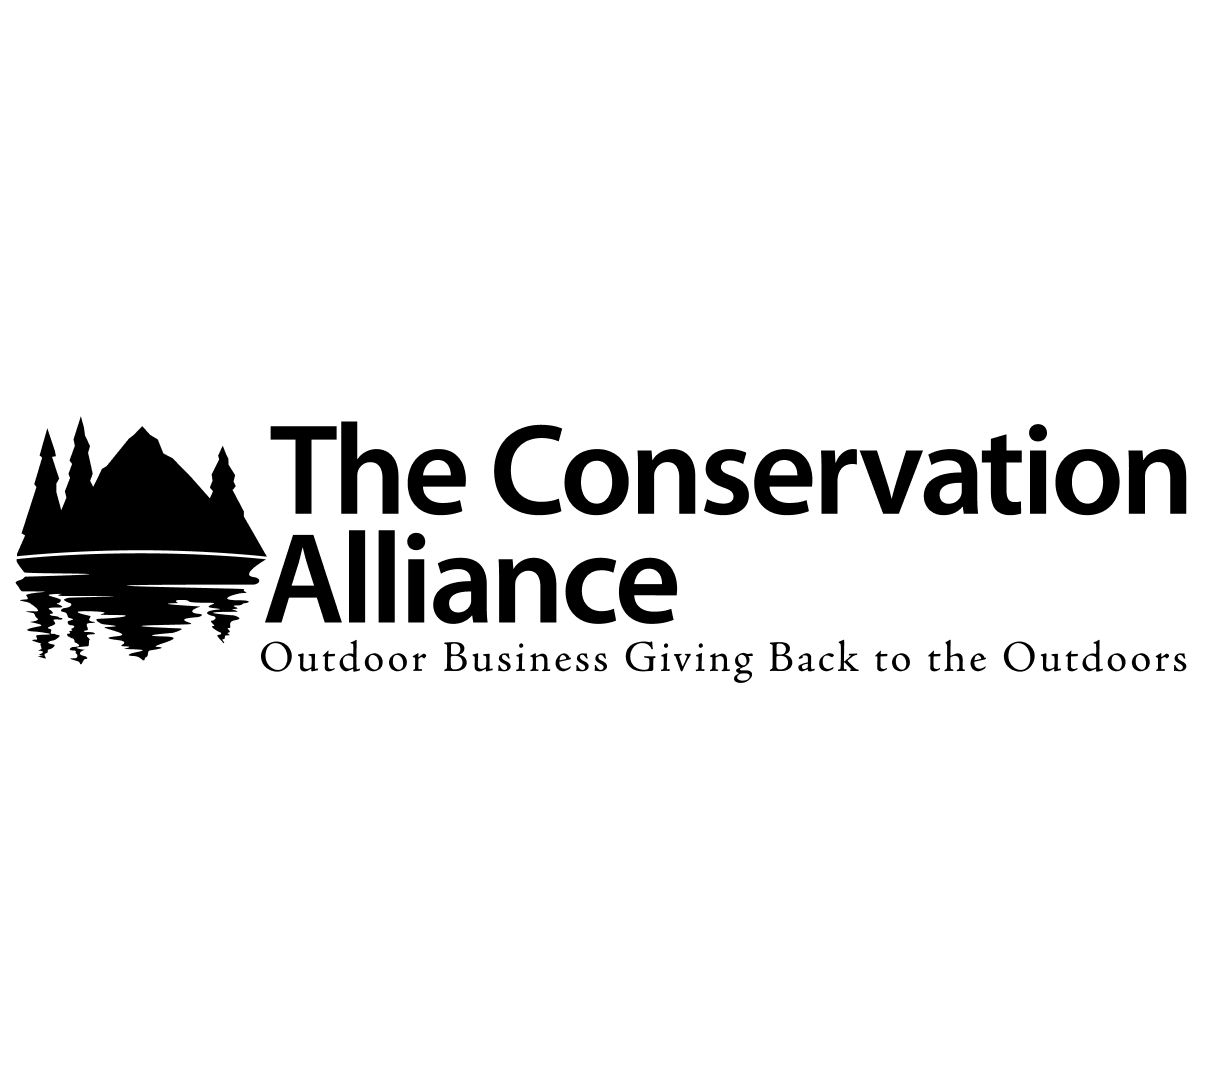 The Conservation Alliance logo.